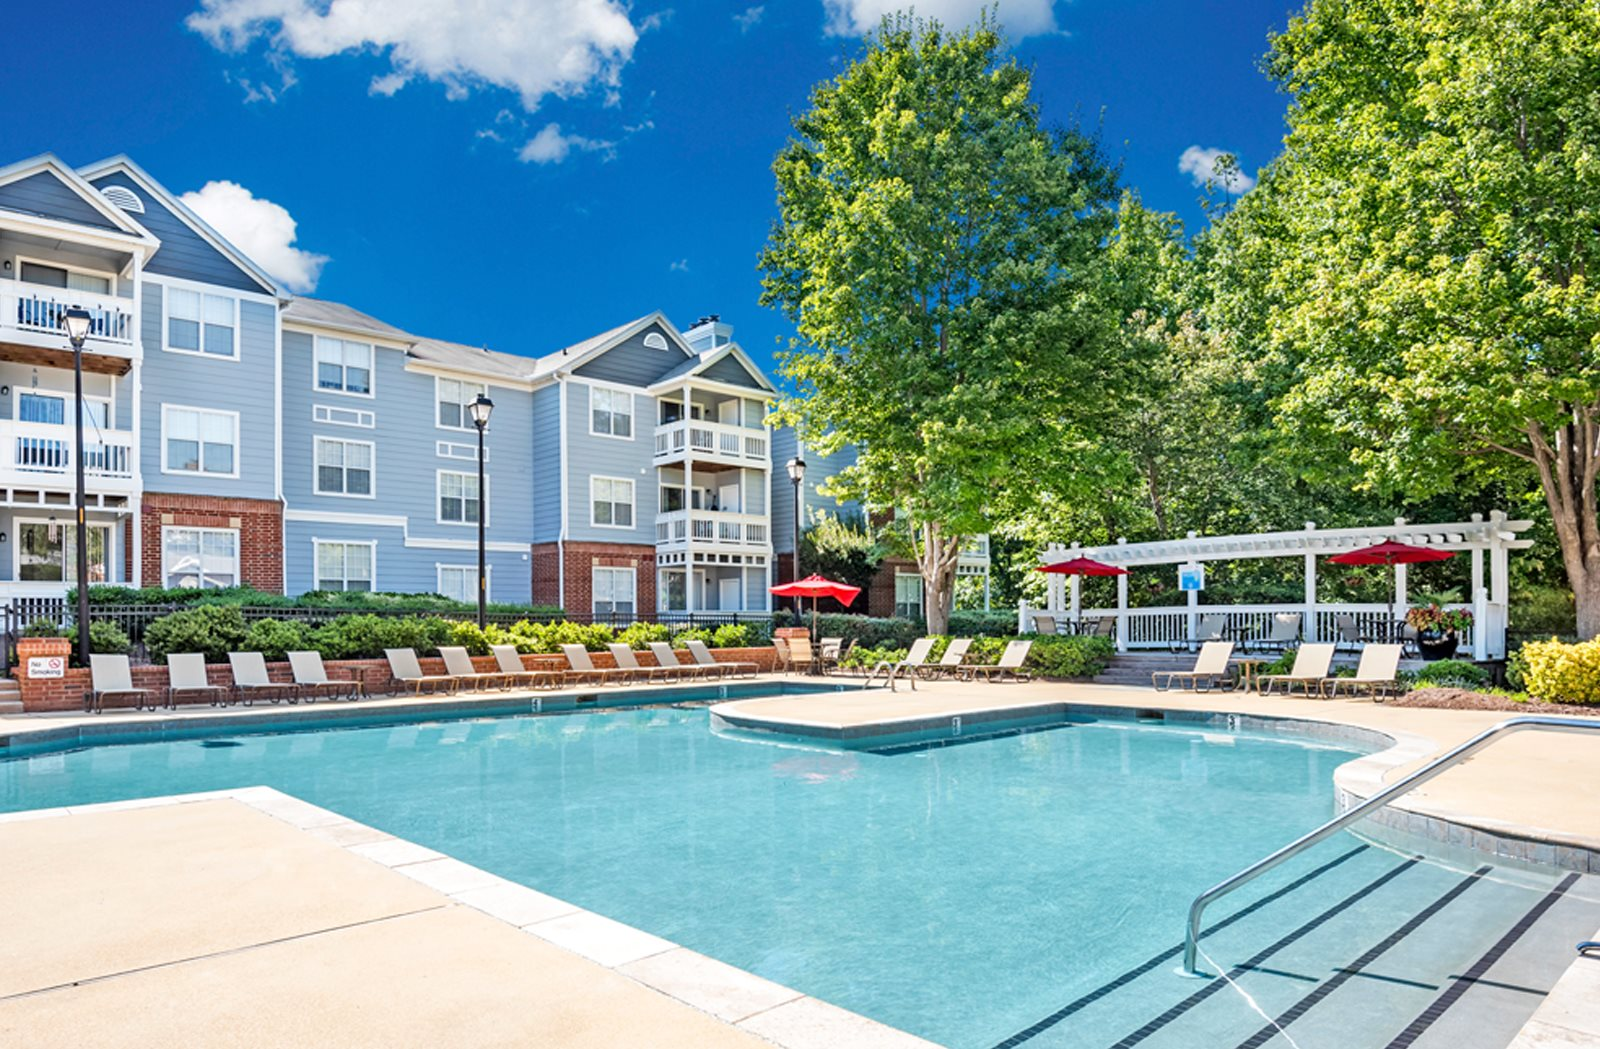 Admirable Apartments In Raleigh Nc The Village Apartments Home Interior And Landscaping Ferensignezvosmurscom